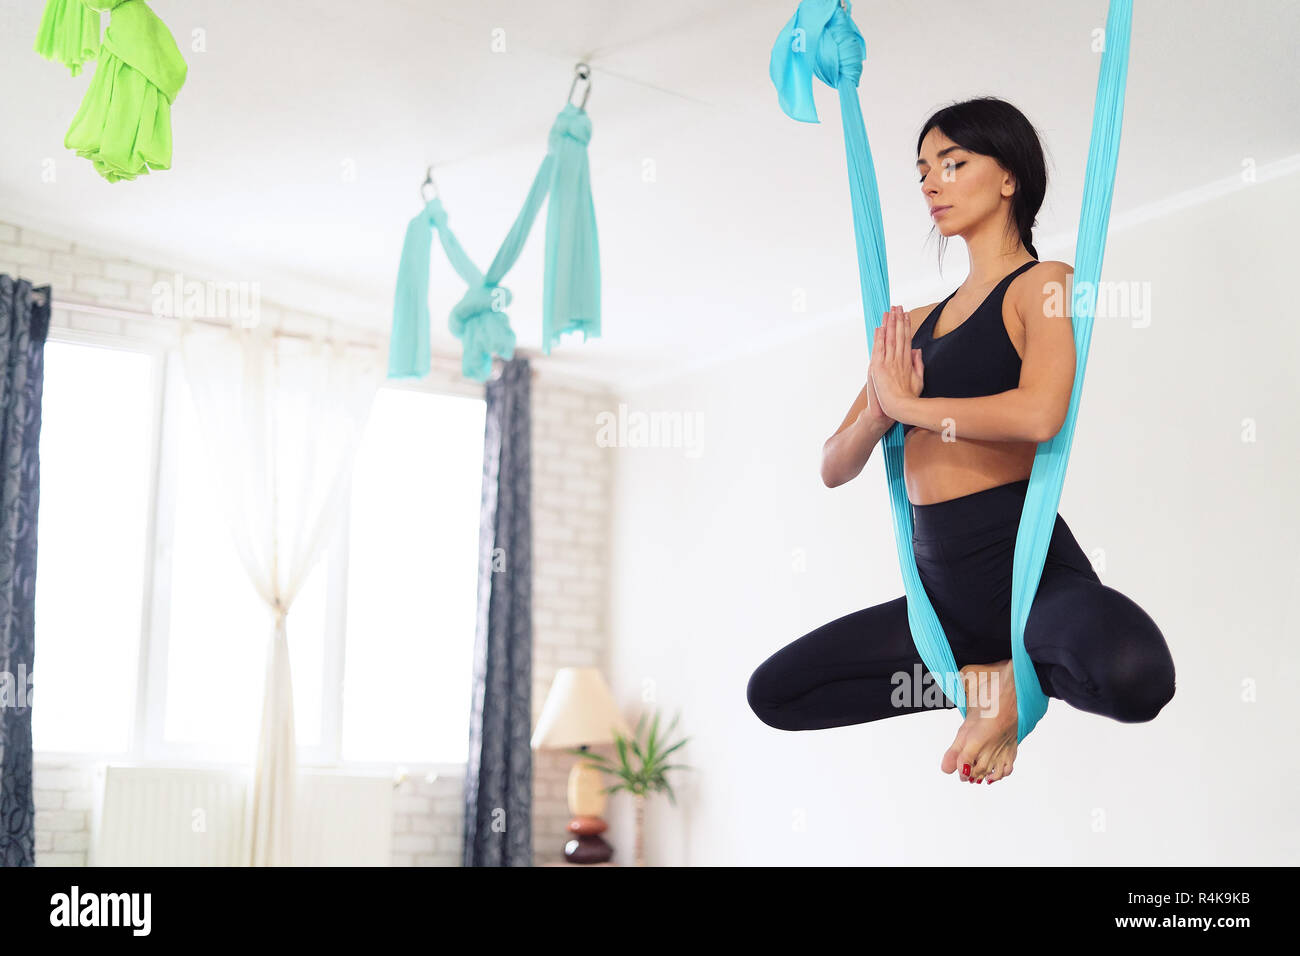 Yoga Butterfly Pose High Resolution Stock Photography and Images